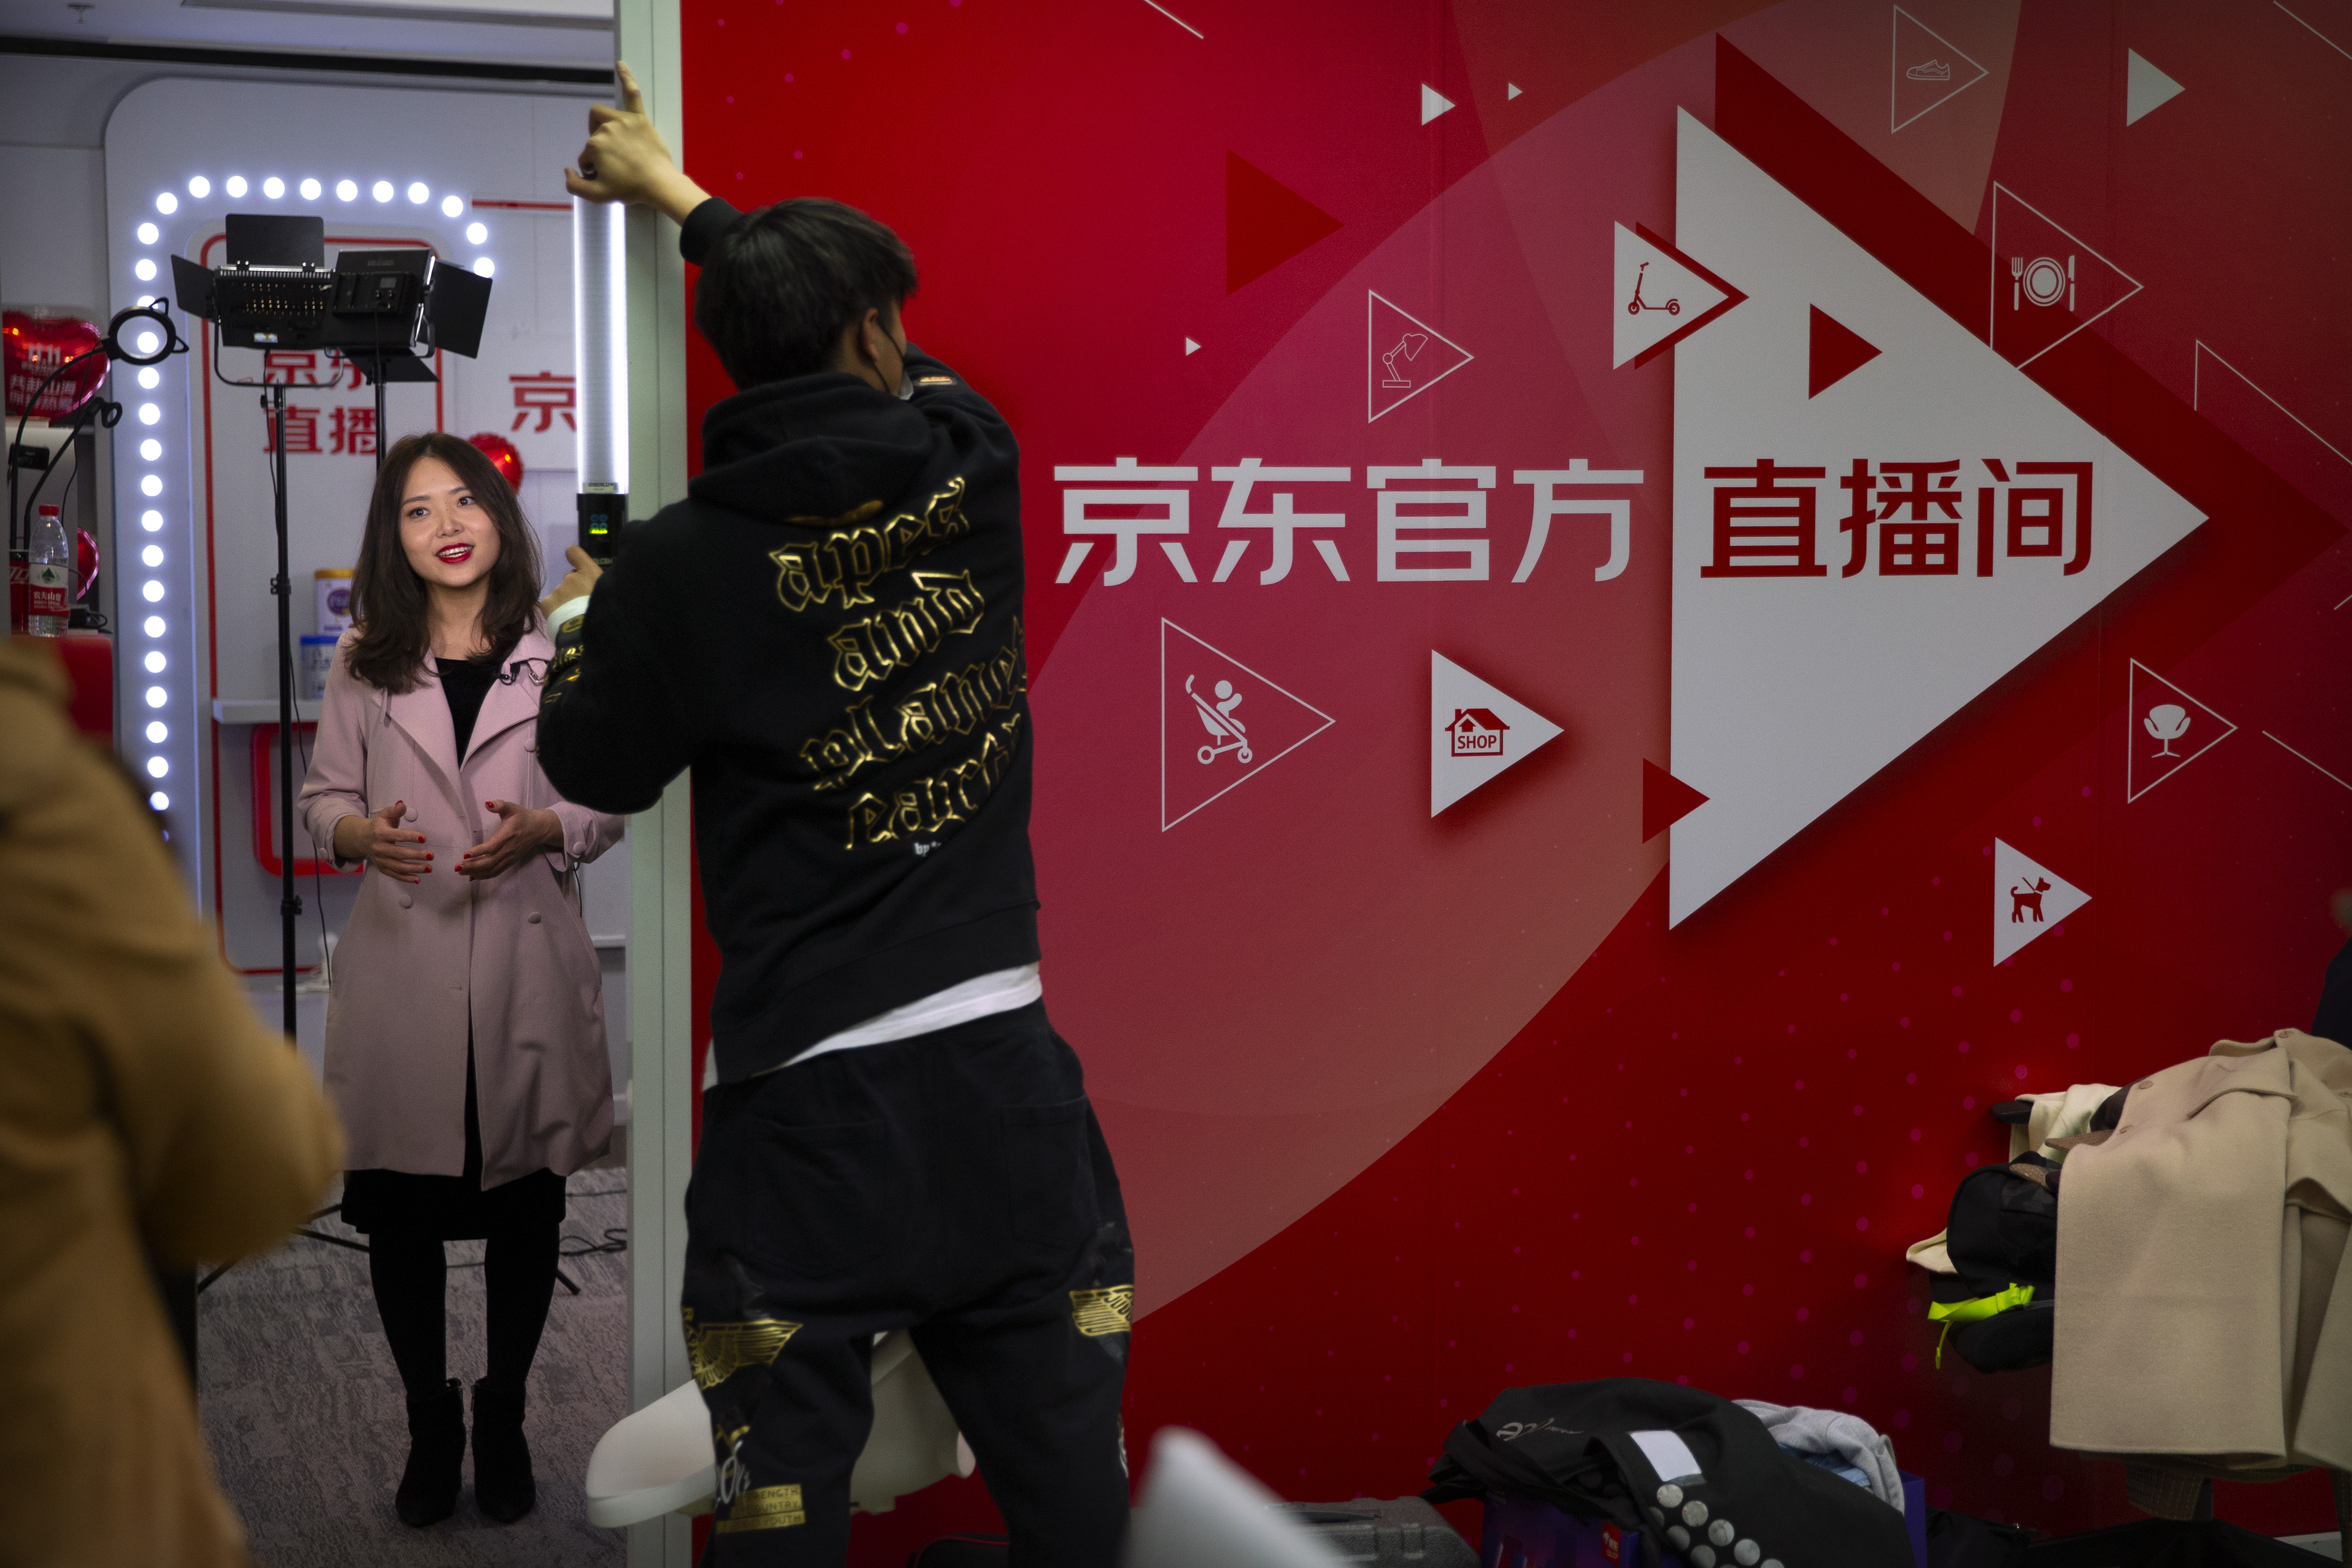 A host records a promotional video for a product at the headquarters of online retailer JD.com in Beijing.